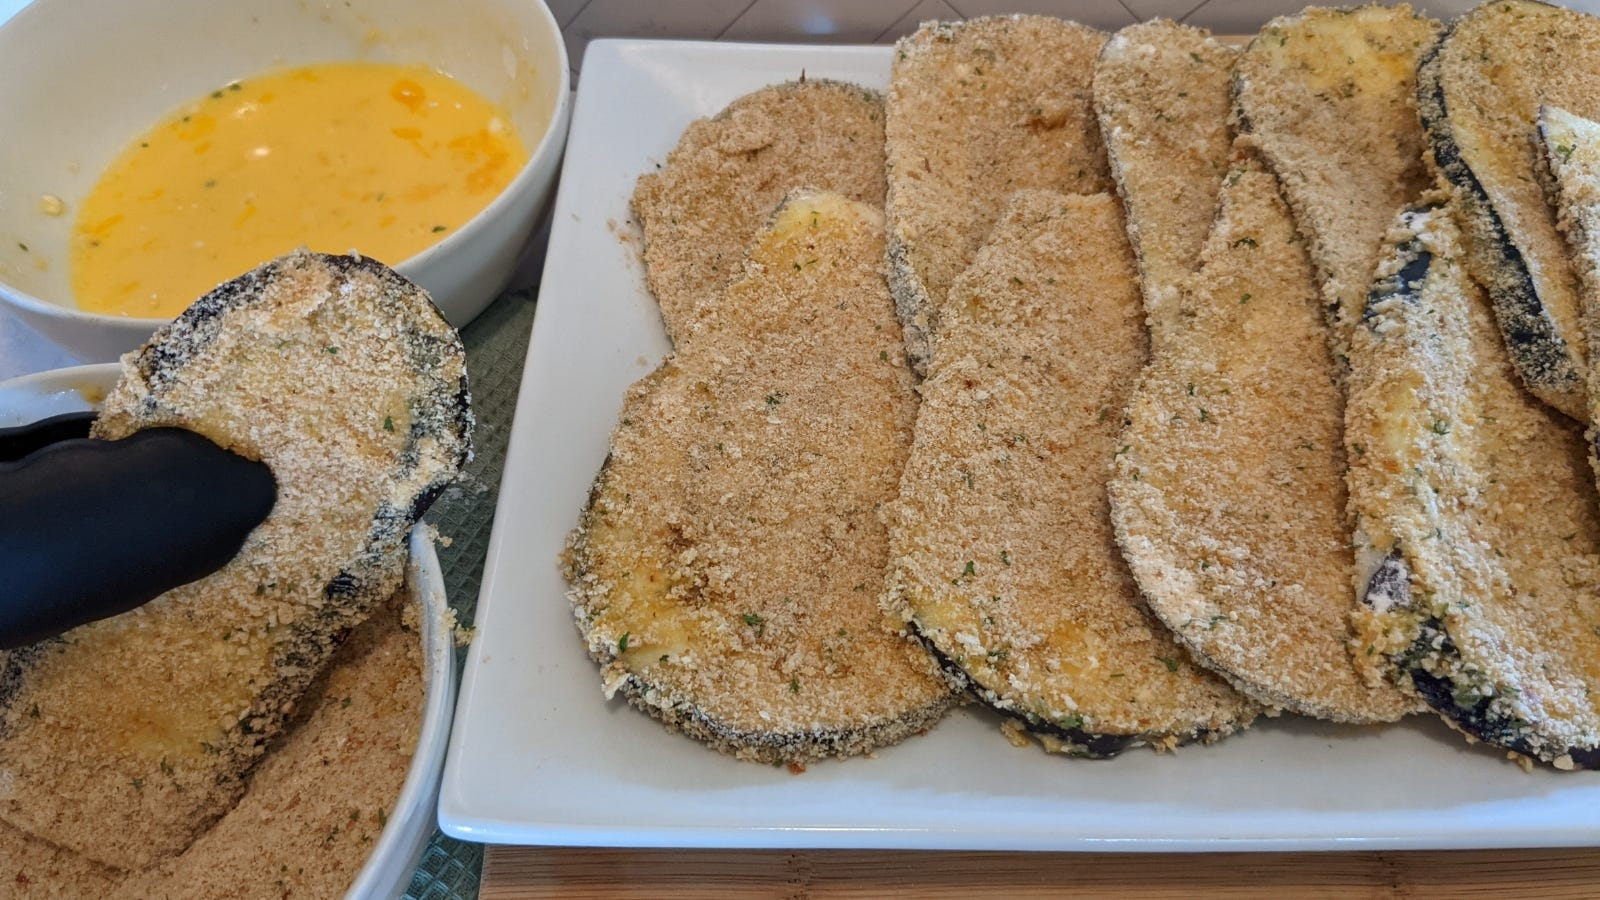 Transfering a coated slice of eggplant, covered in breadcrumbs, ready to go into the skillet.